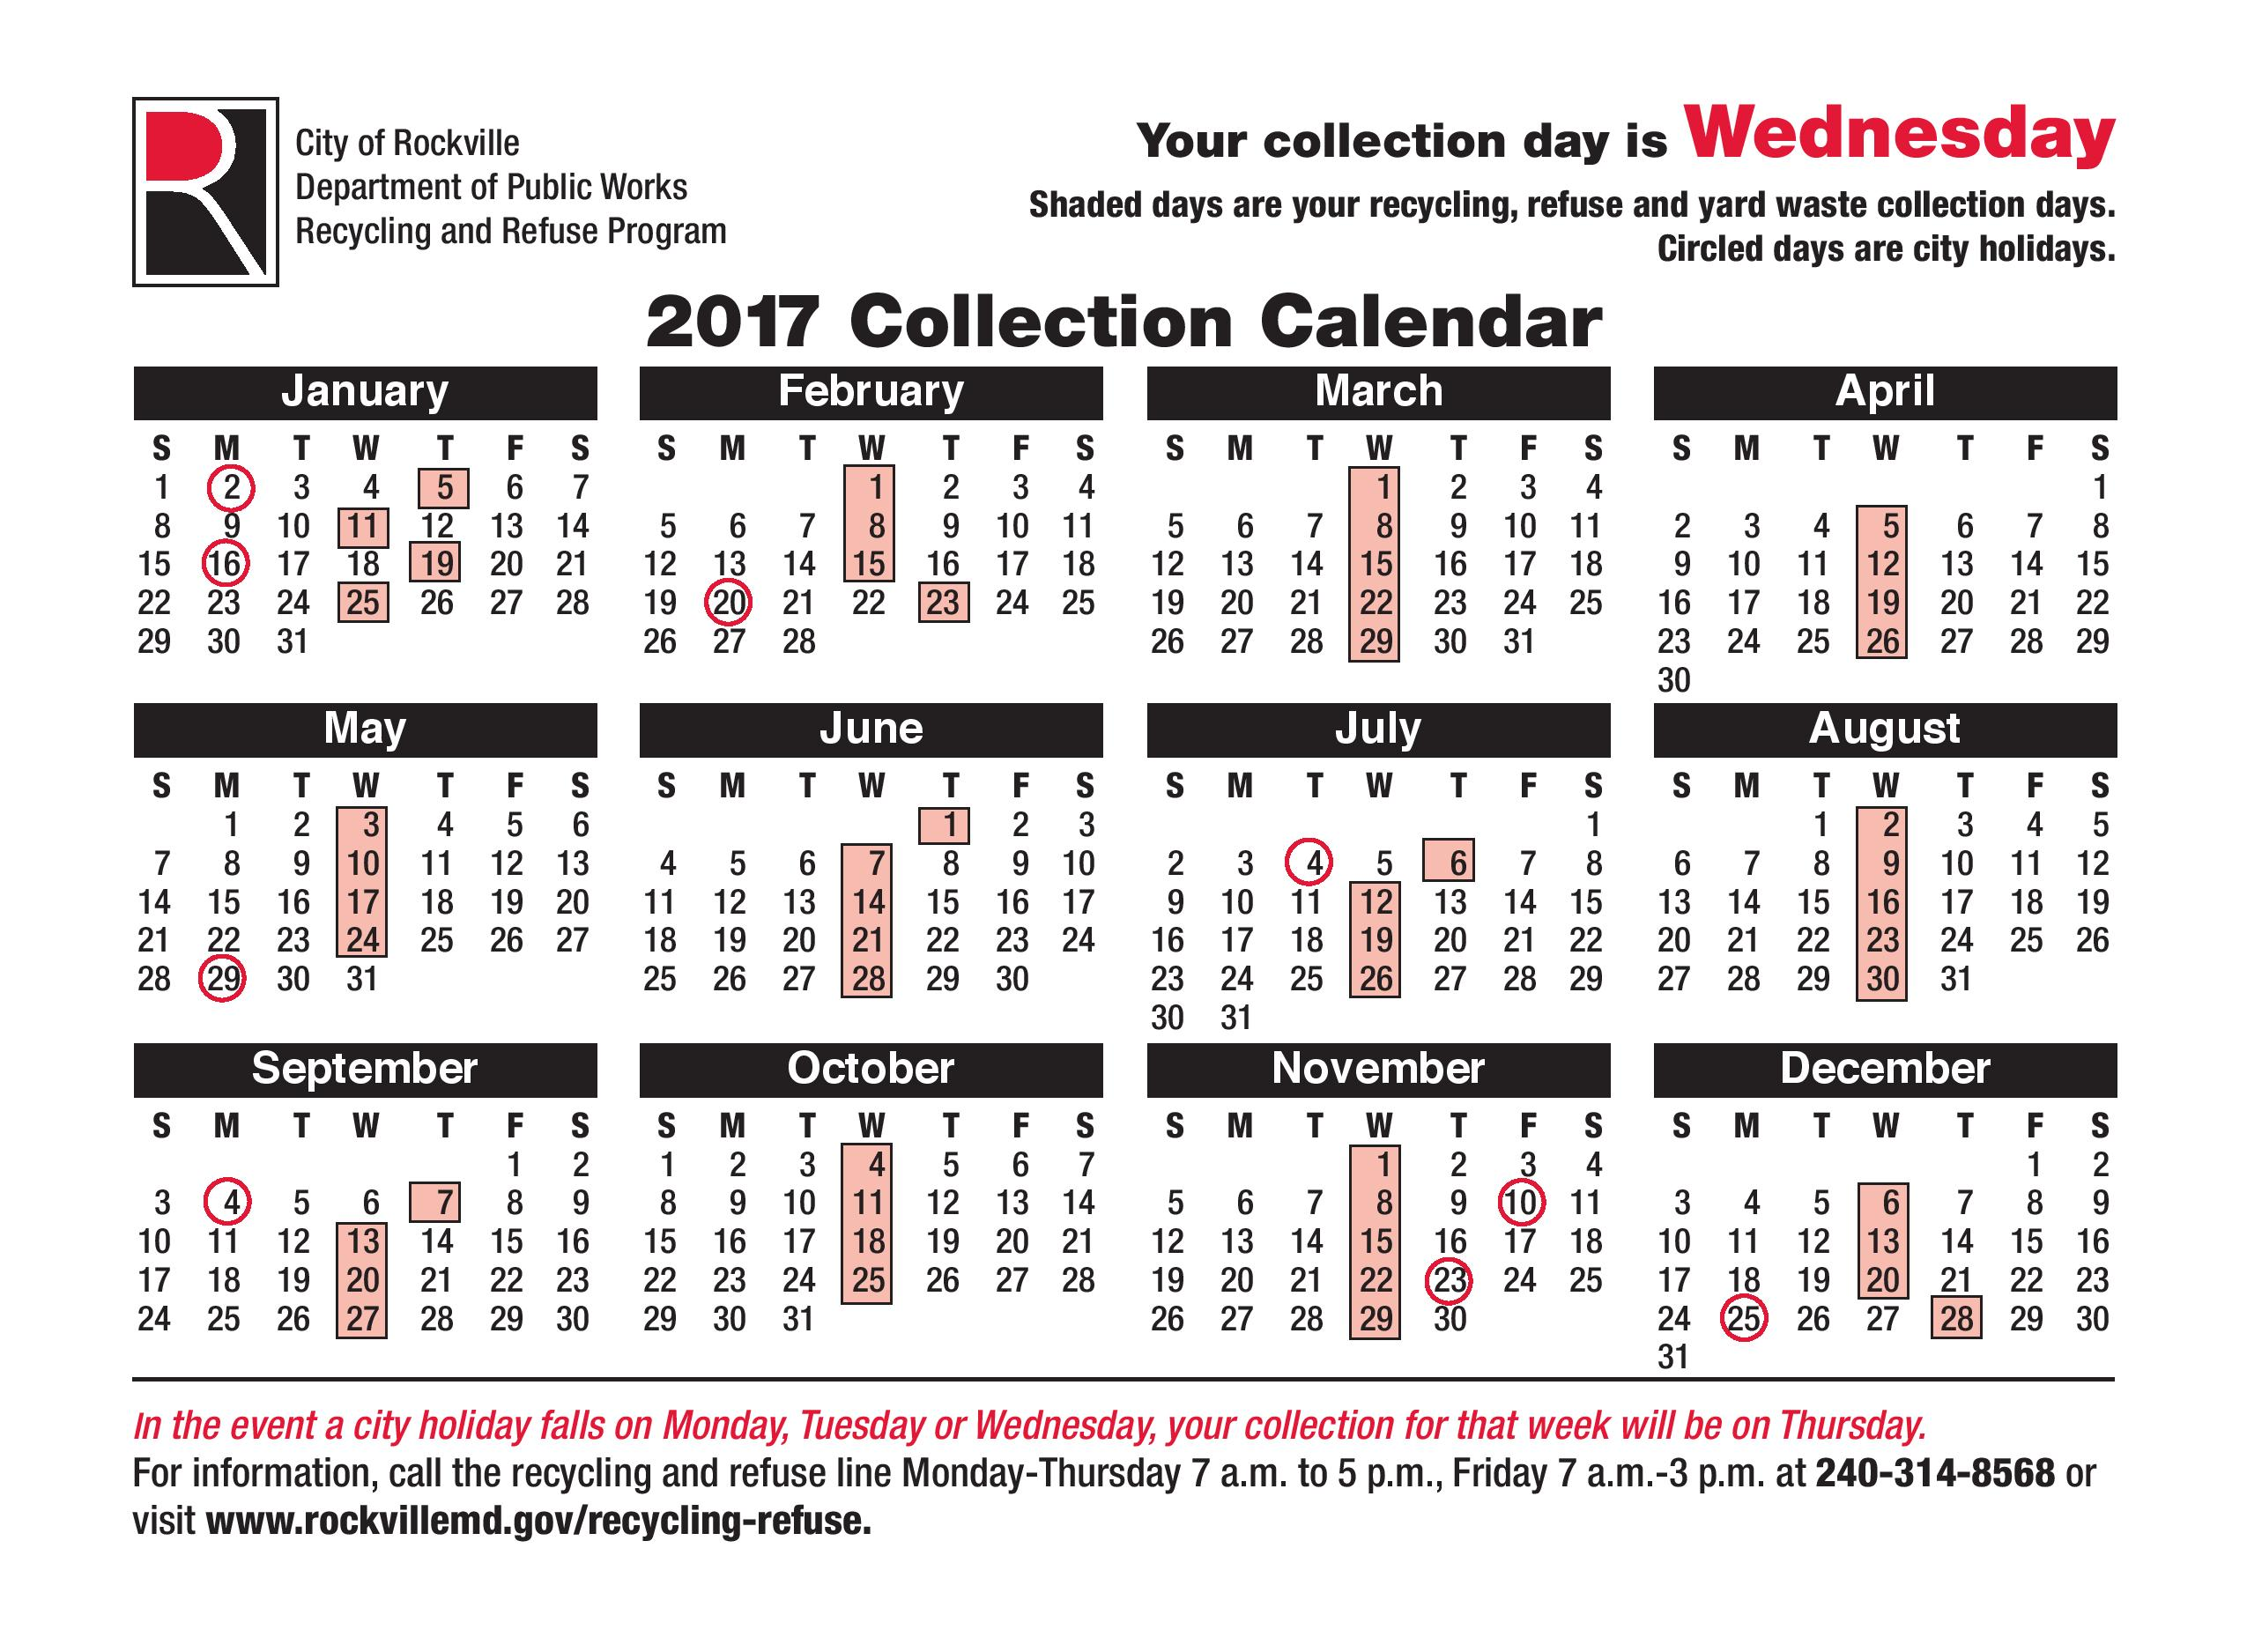 Wednesday Recycling Schedule 2017